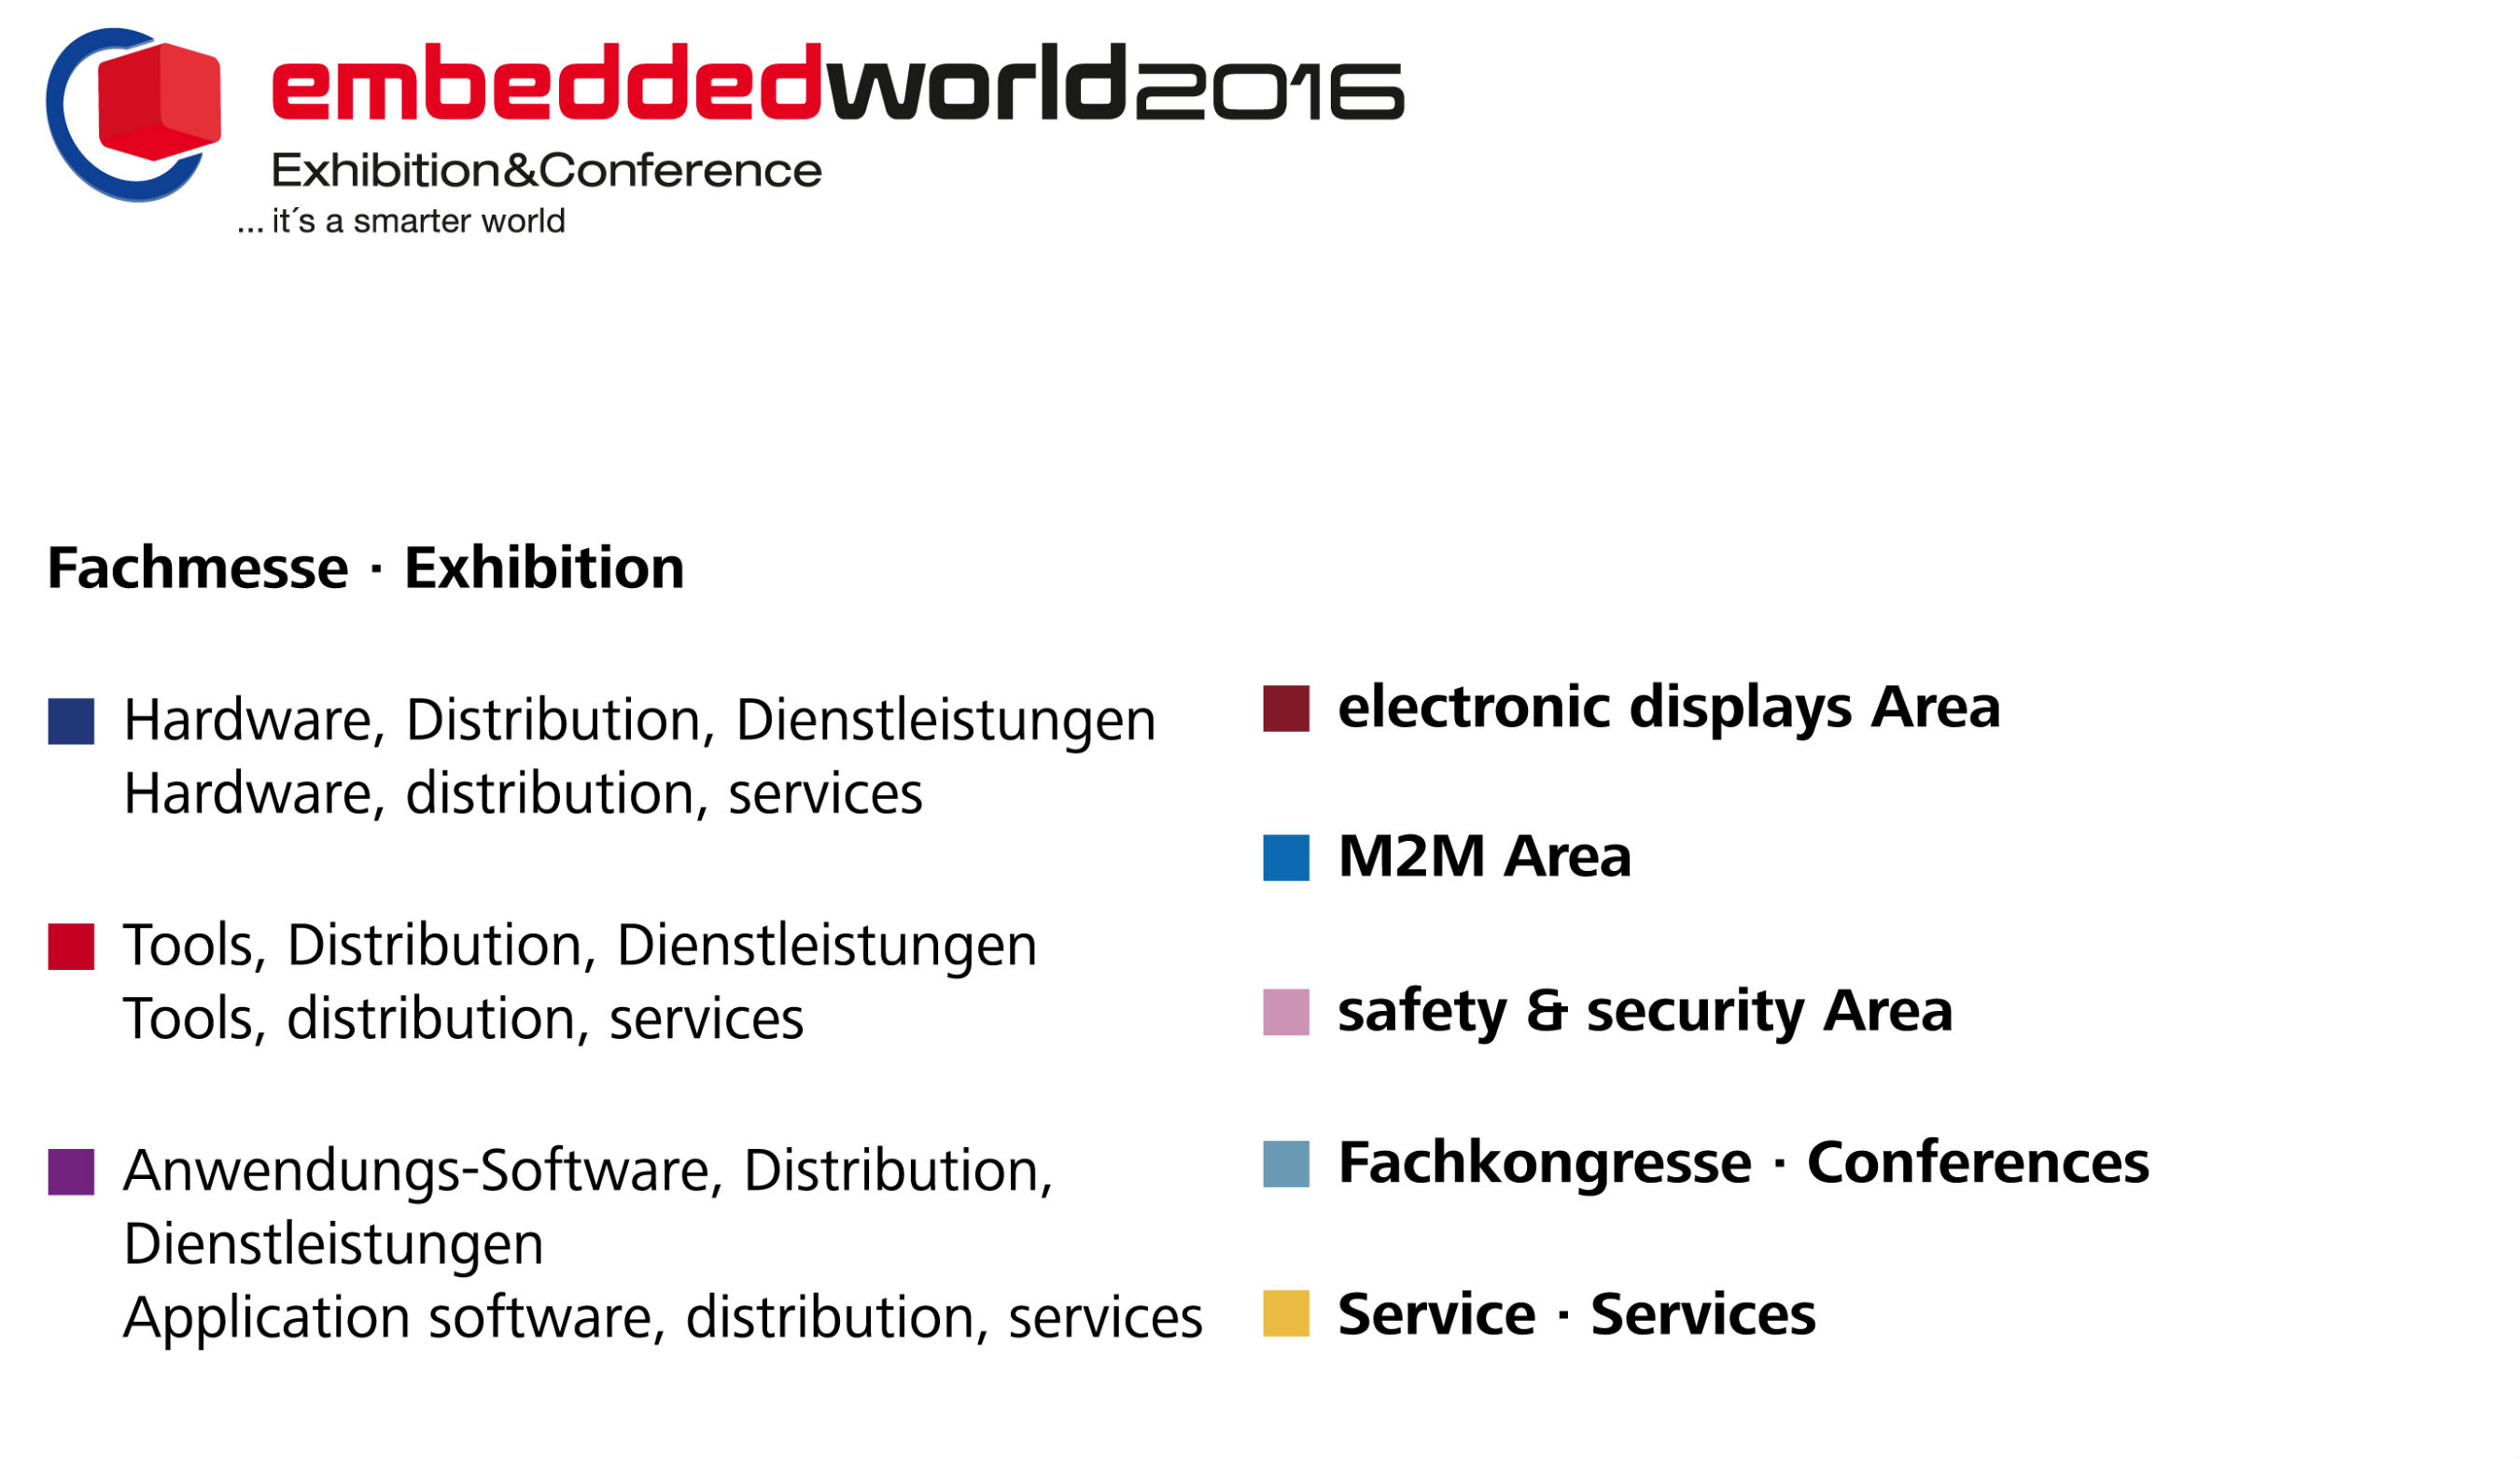 embedded world Hallenlegende